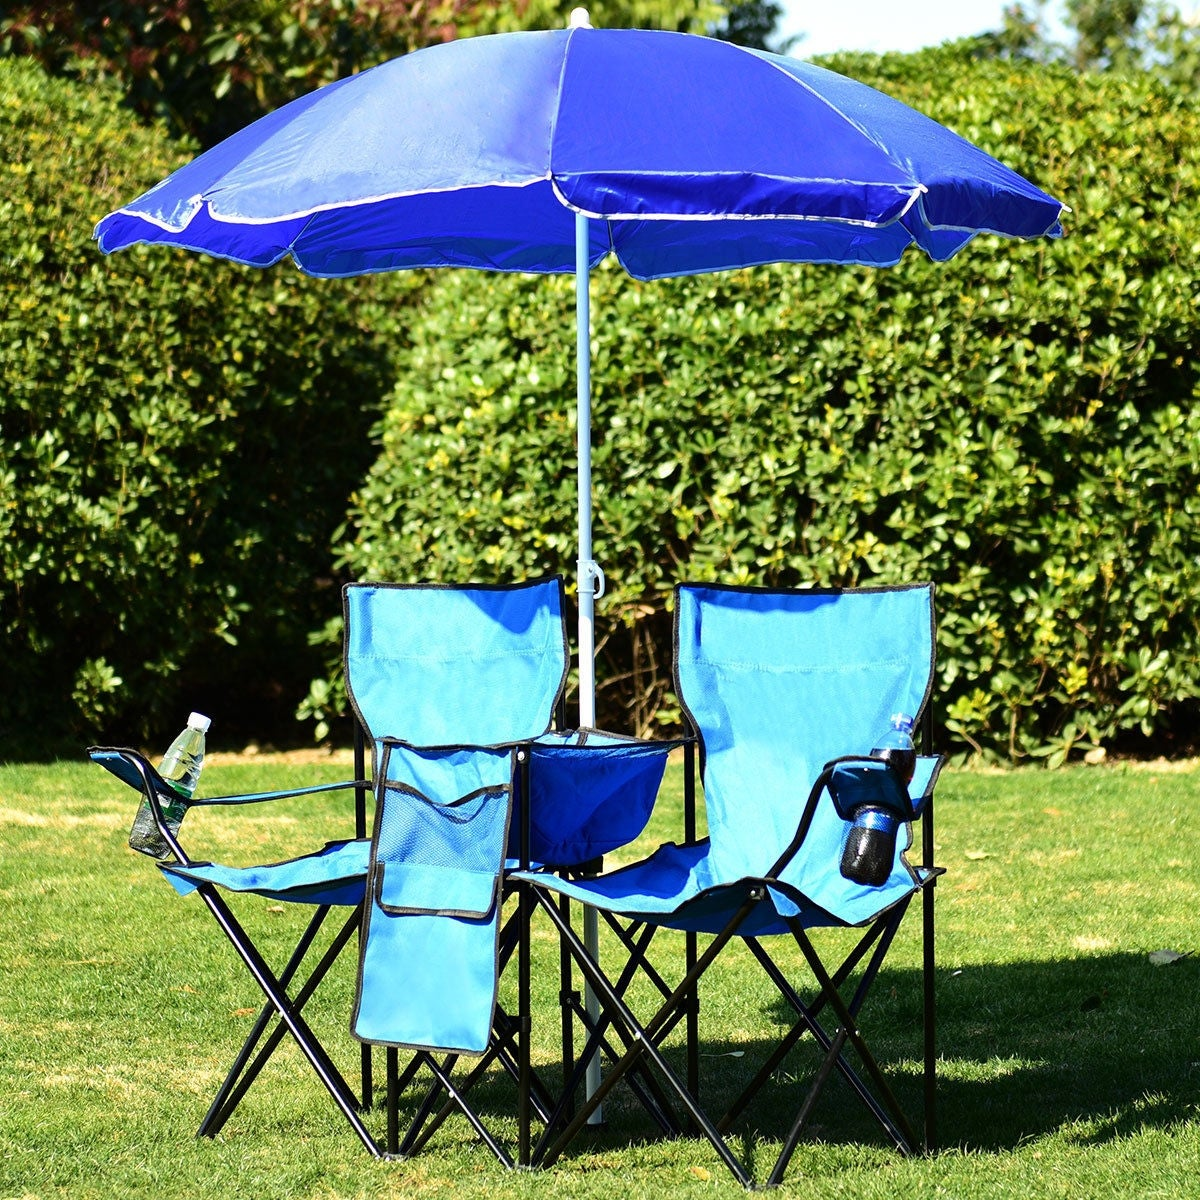 Costway Portable Folding Picnic Double Chair W Umbrella Table Cooler Beach Camping Blue Free Shipping Today 16738353